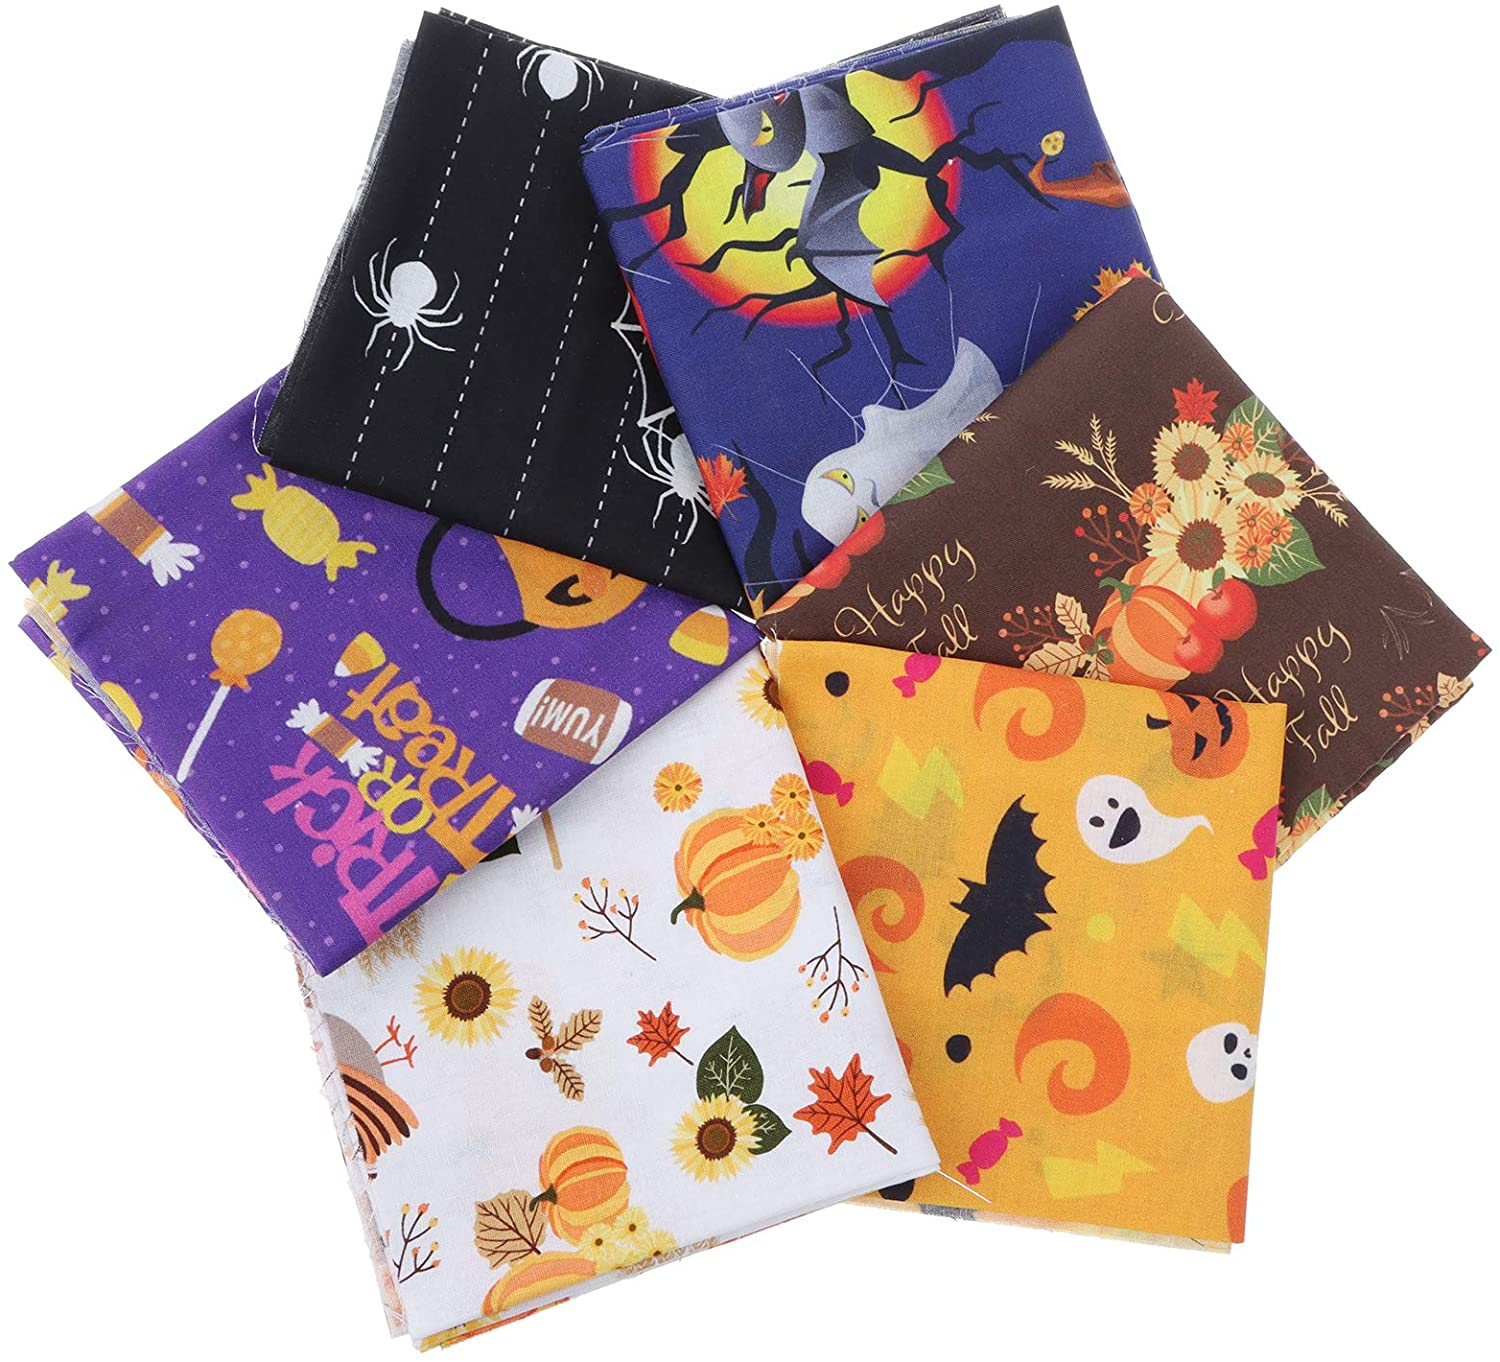 Halloween Cotton Fabric Bundles Sewing Solid Color Square Fabric Scraps Sewing Fabric for DIY Craft Party Supplies, 6 Style (6pcs/50x50cm)